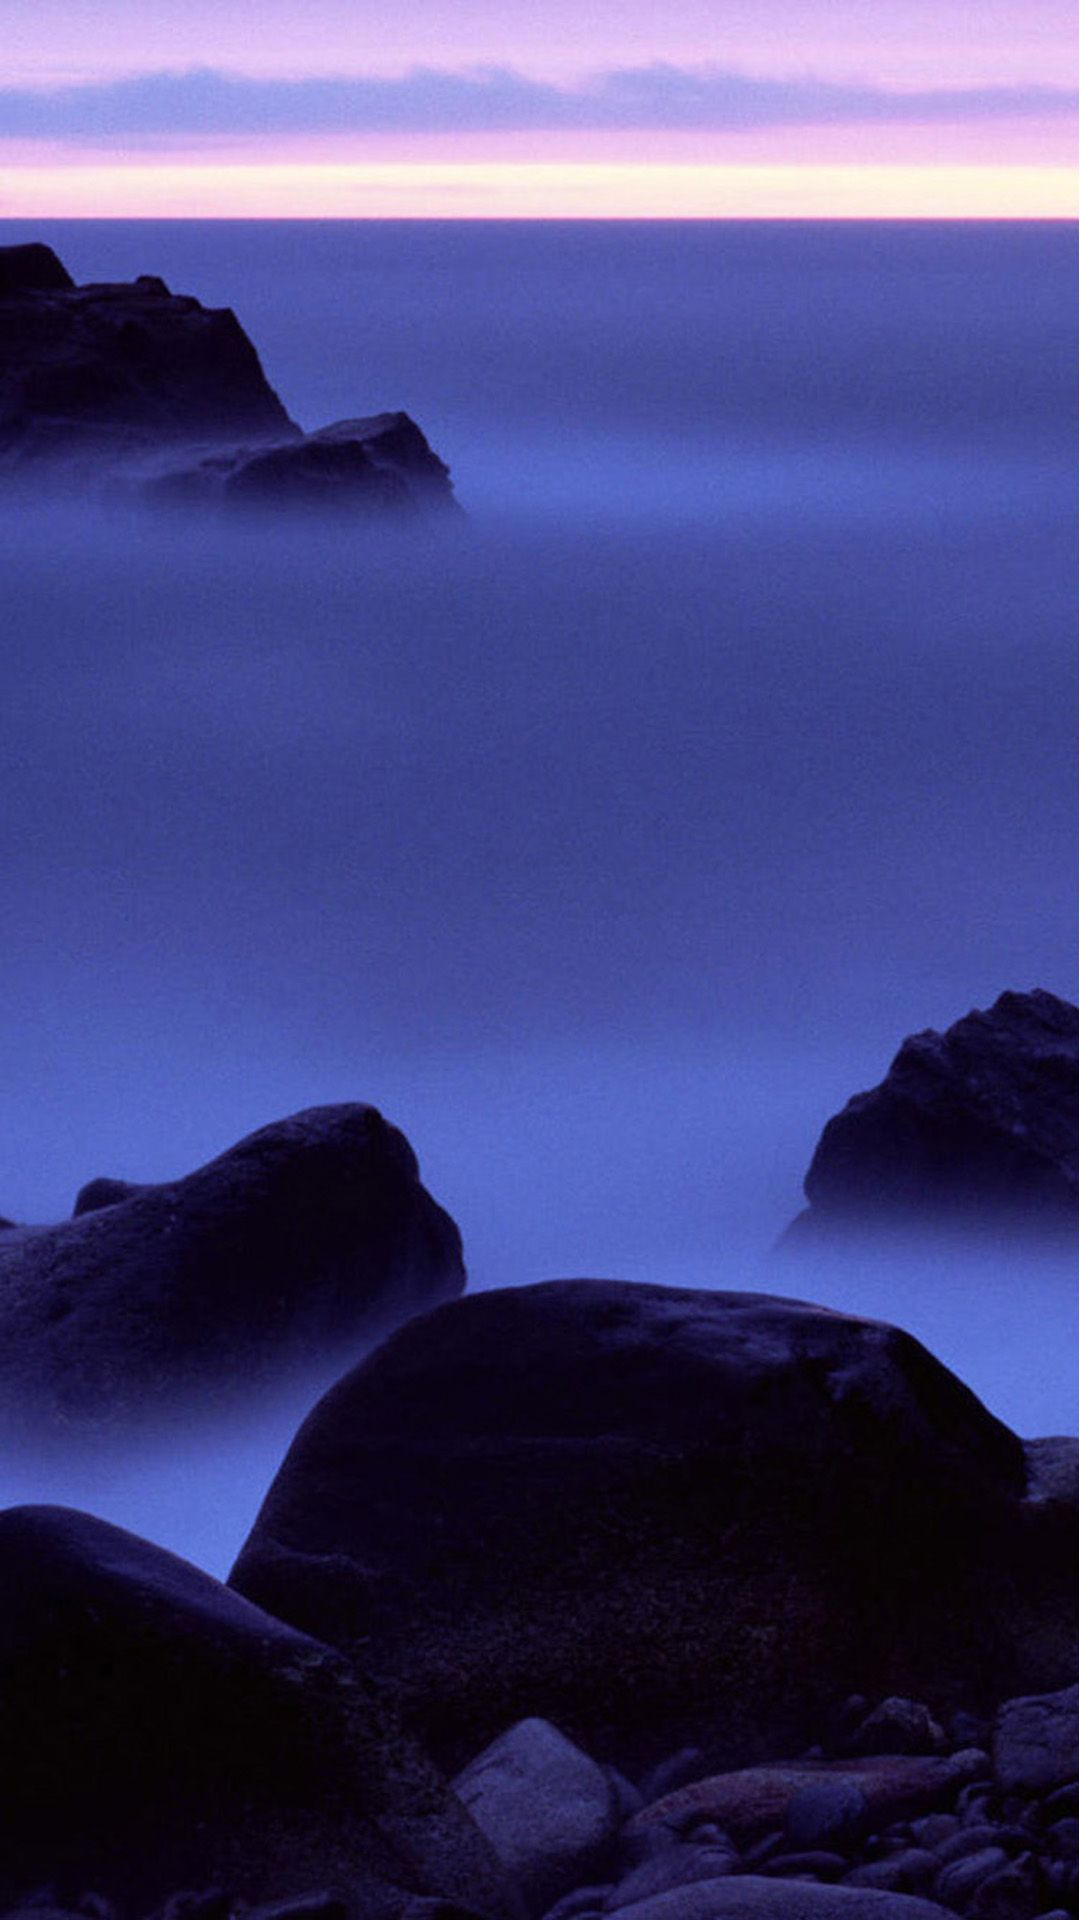 Nature Night Sea View Background IPhone 6 Plus Wallpaper